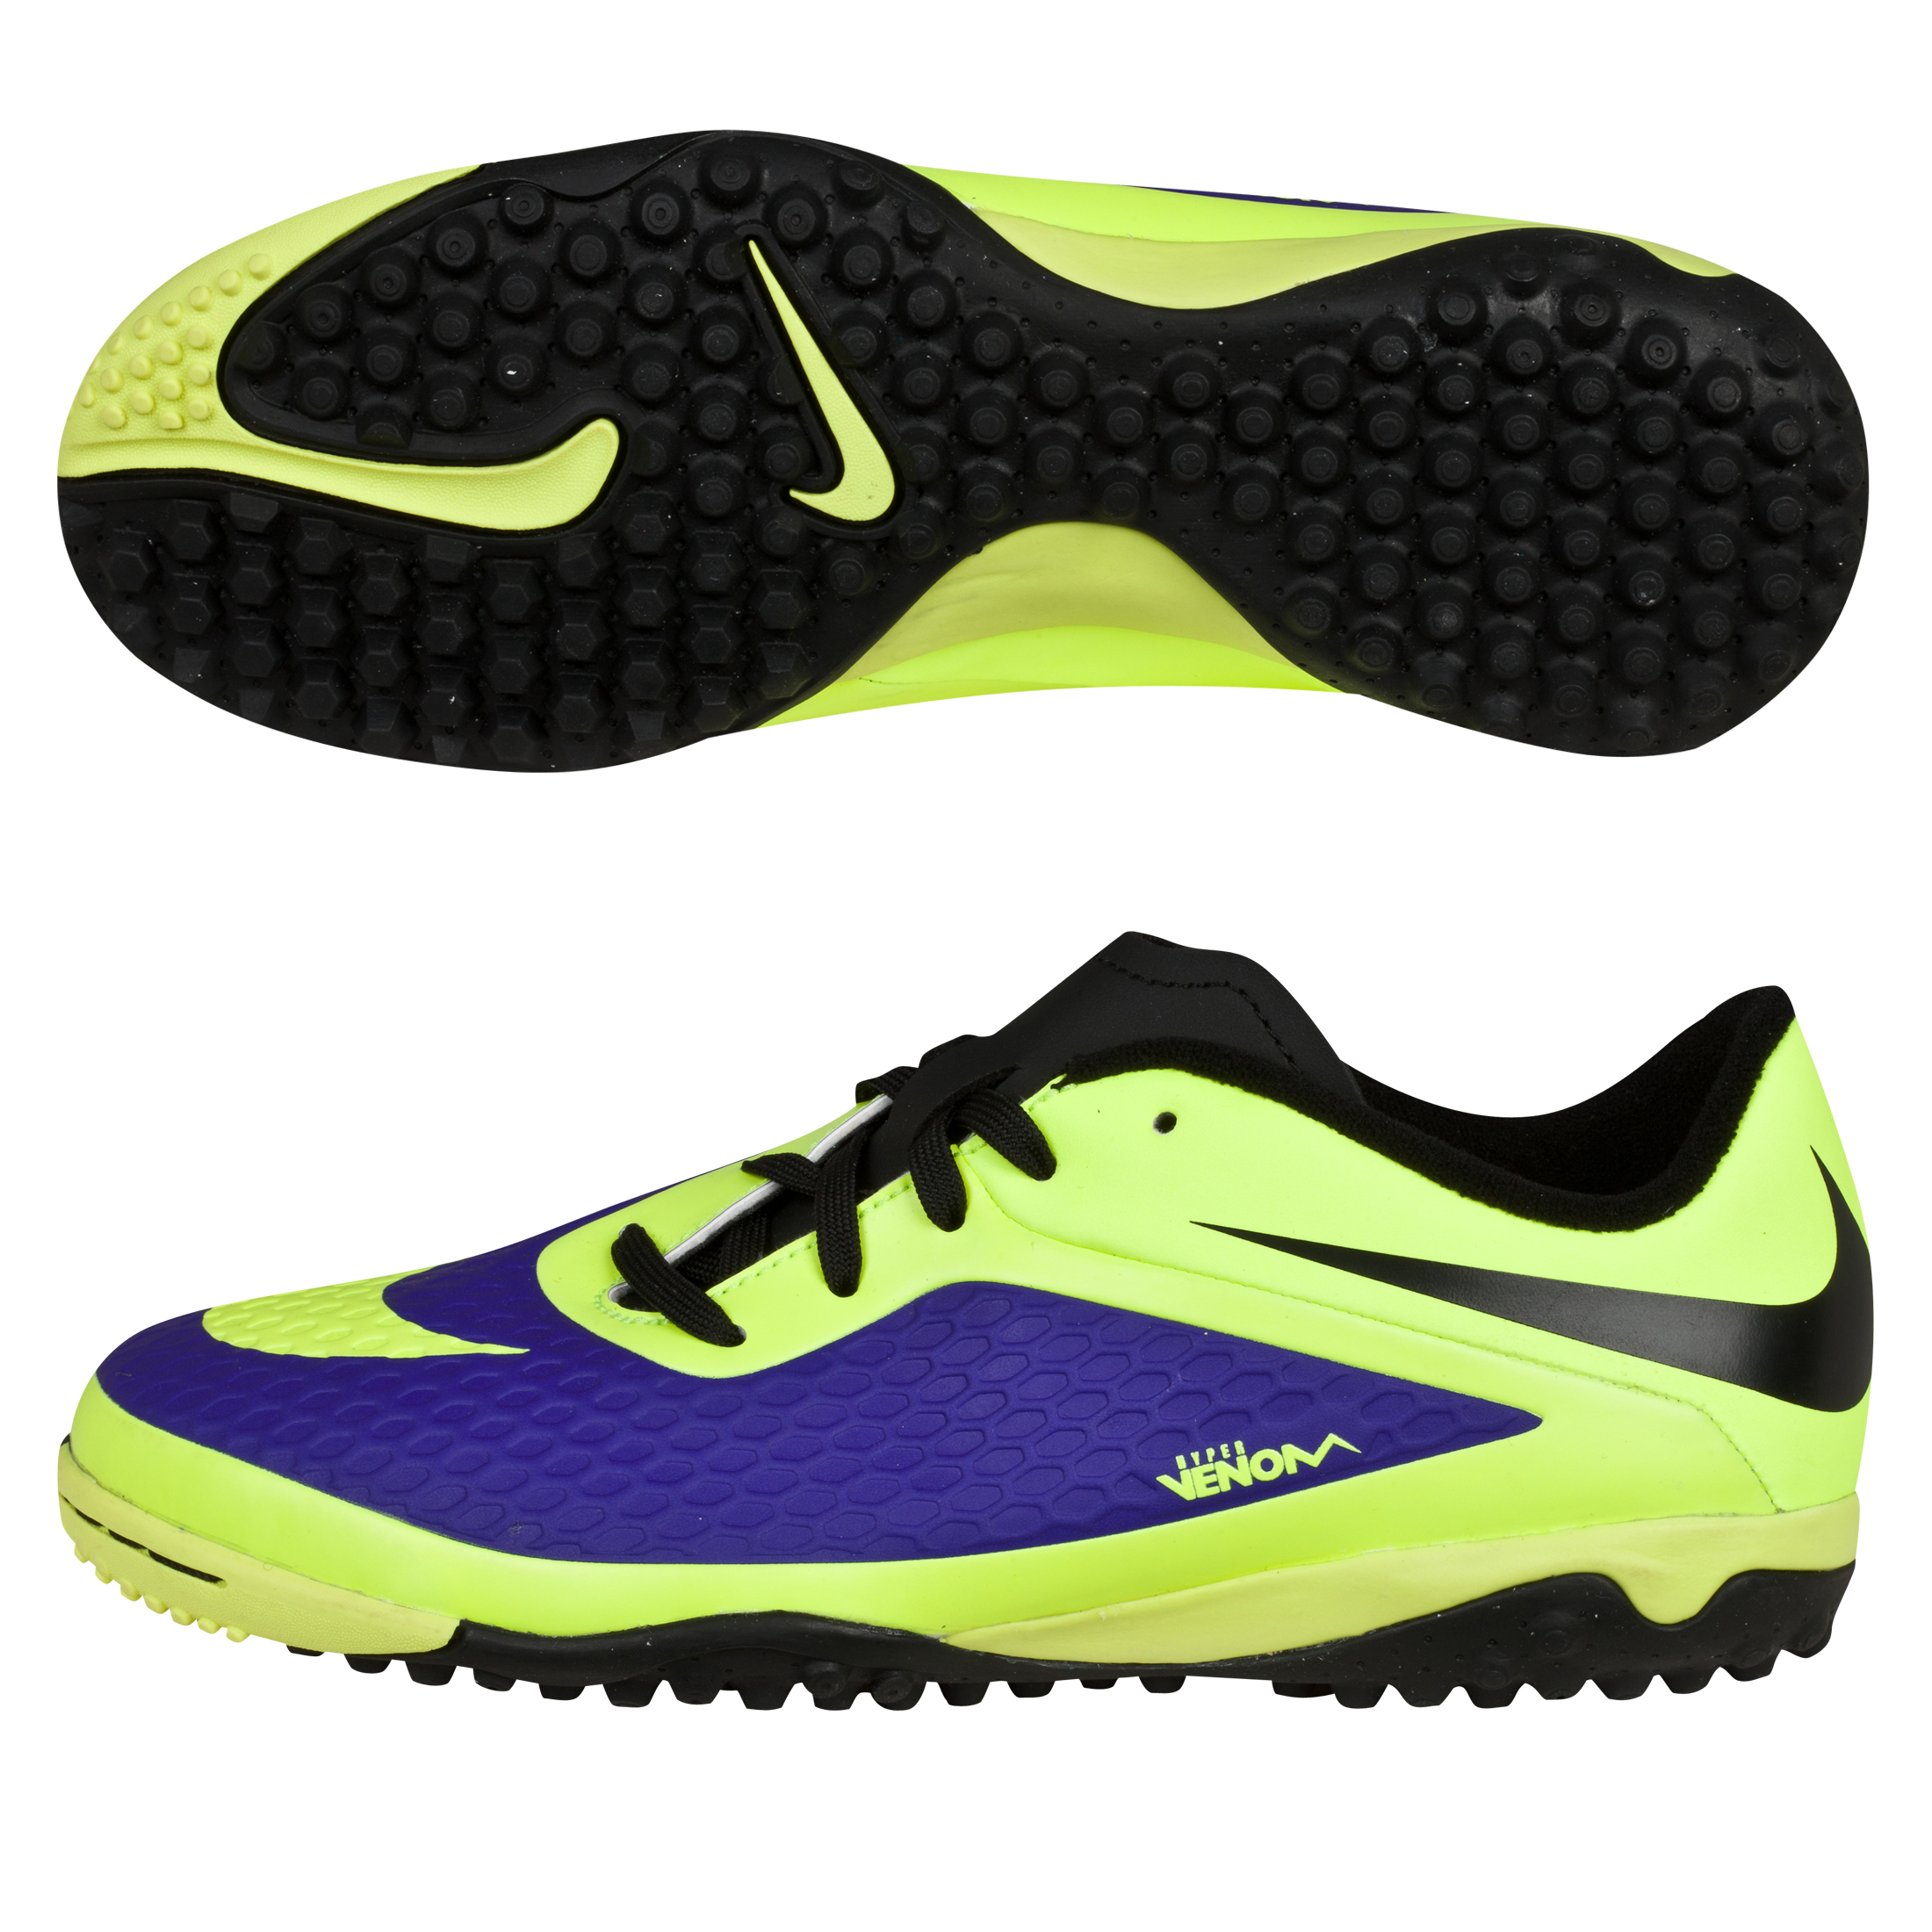 Nike Hypervenom Phelon Astroturf Trainers - Kids-Electro Purple/Volt/Black Lt Green